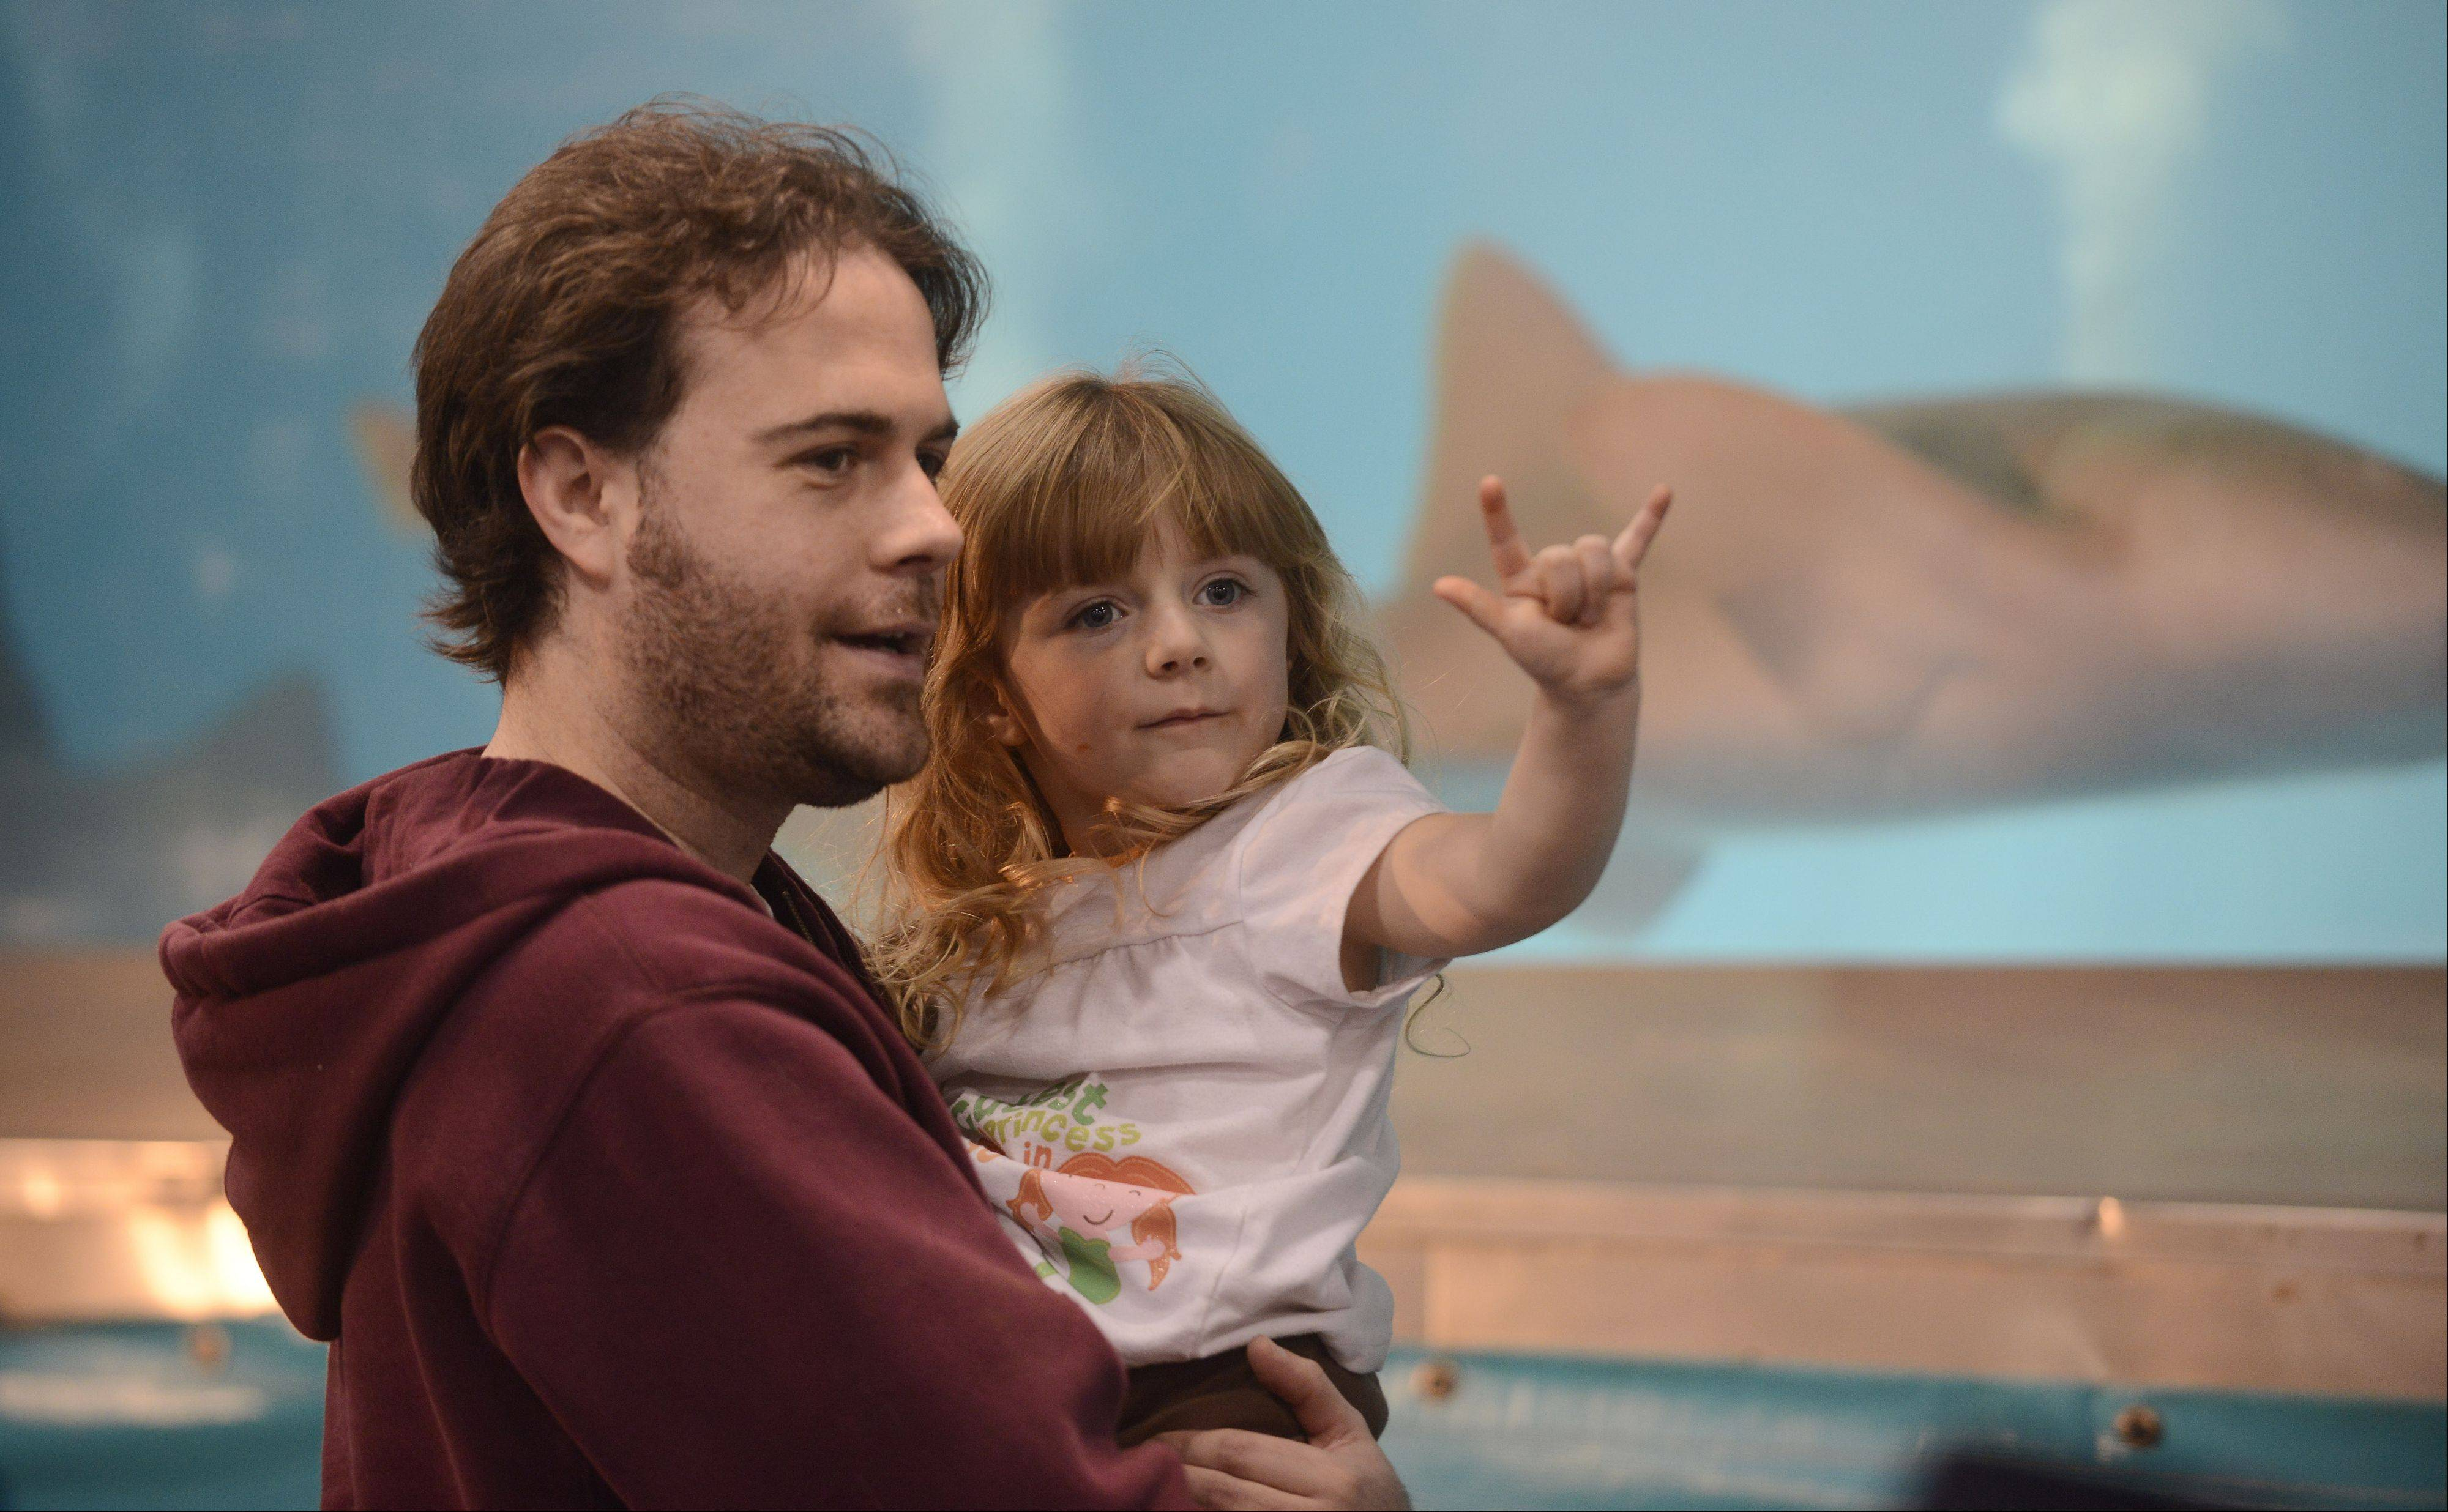 Jaymes Parker of St. Charles and his daughter, Lucinda, 3�, view the shark tank during the Chicago Aquatic Experience Show, held at the Renaissance Schaumburg Convention Center Saturday.